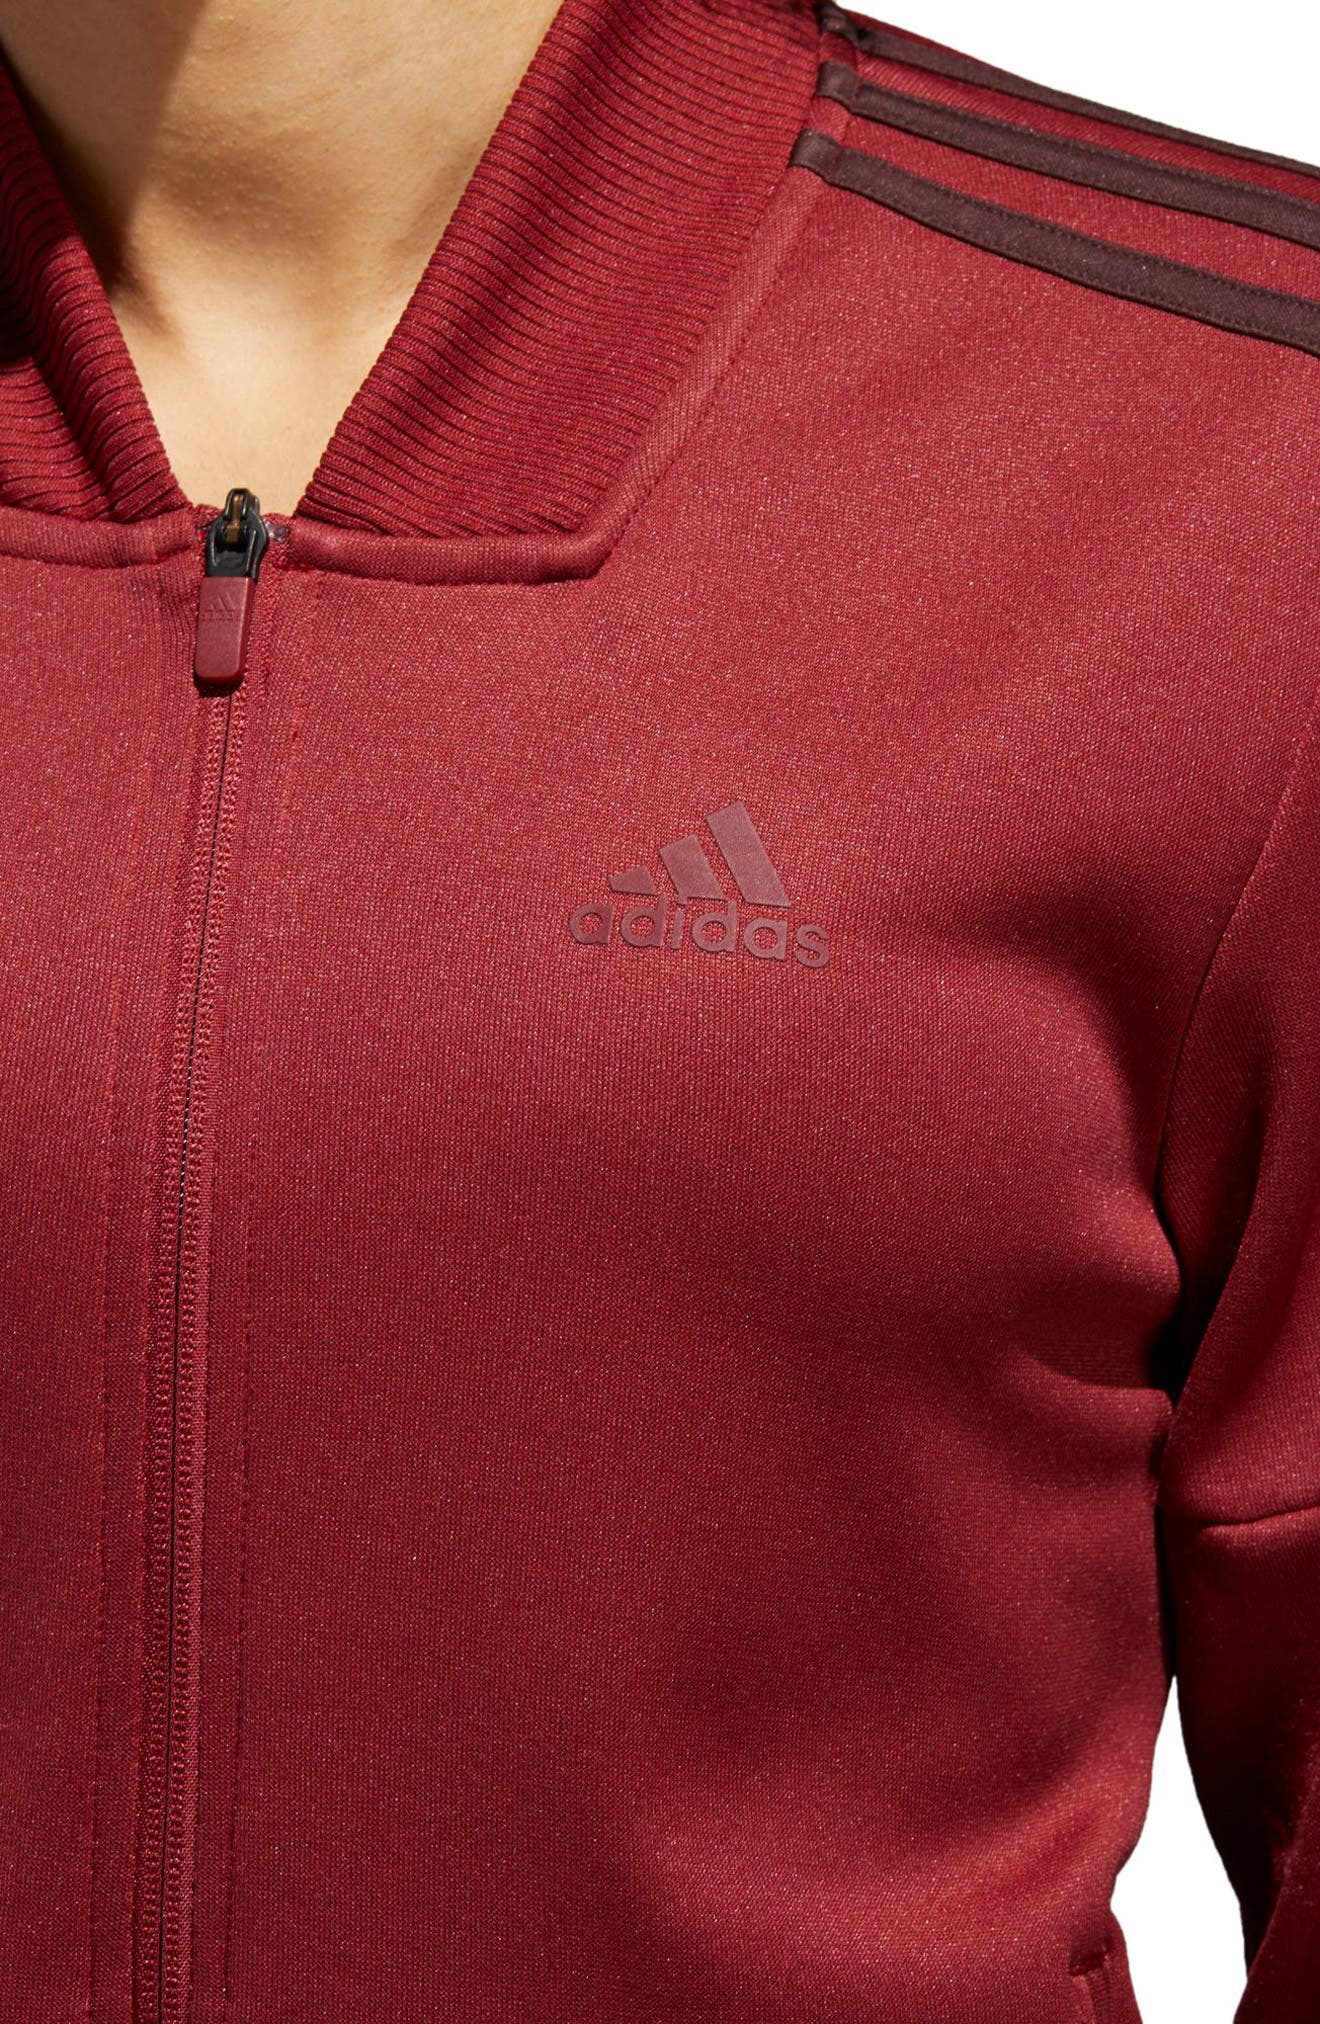 Snap Hem Track Jacket,                             Alternate thumbnail 5, color,                             NOBLE MAROON/ NIGHT RED